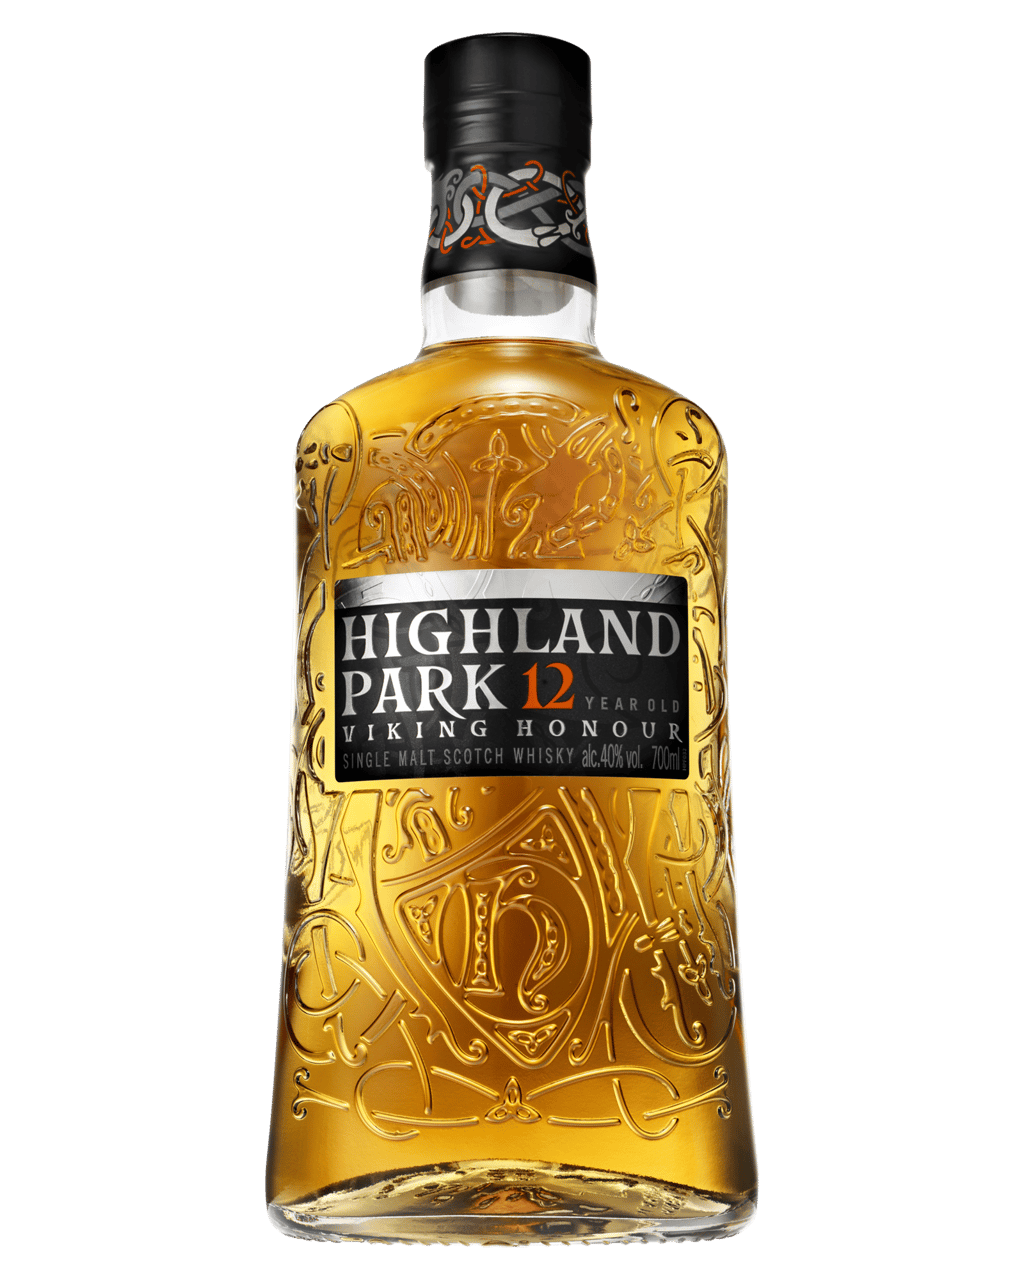 Buy Highland Park 12 Year Old Scotch Whisky 700mL | Dan Murphy's